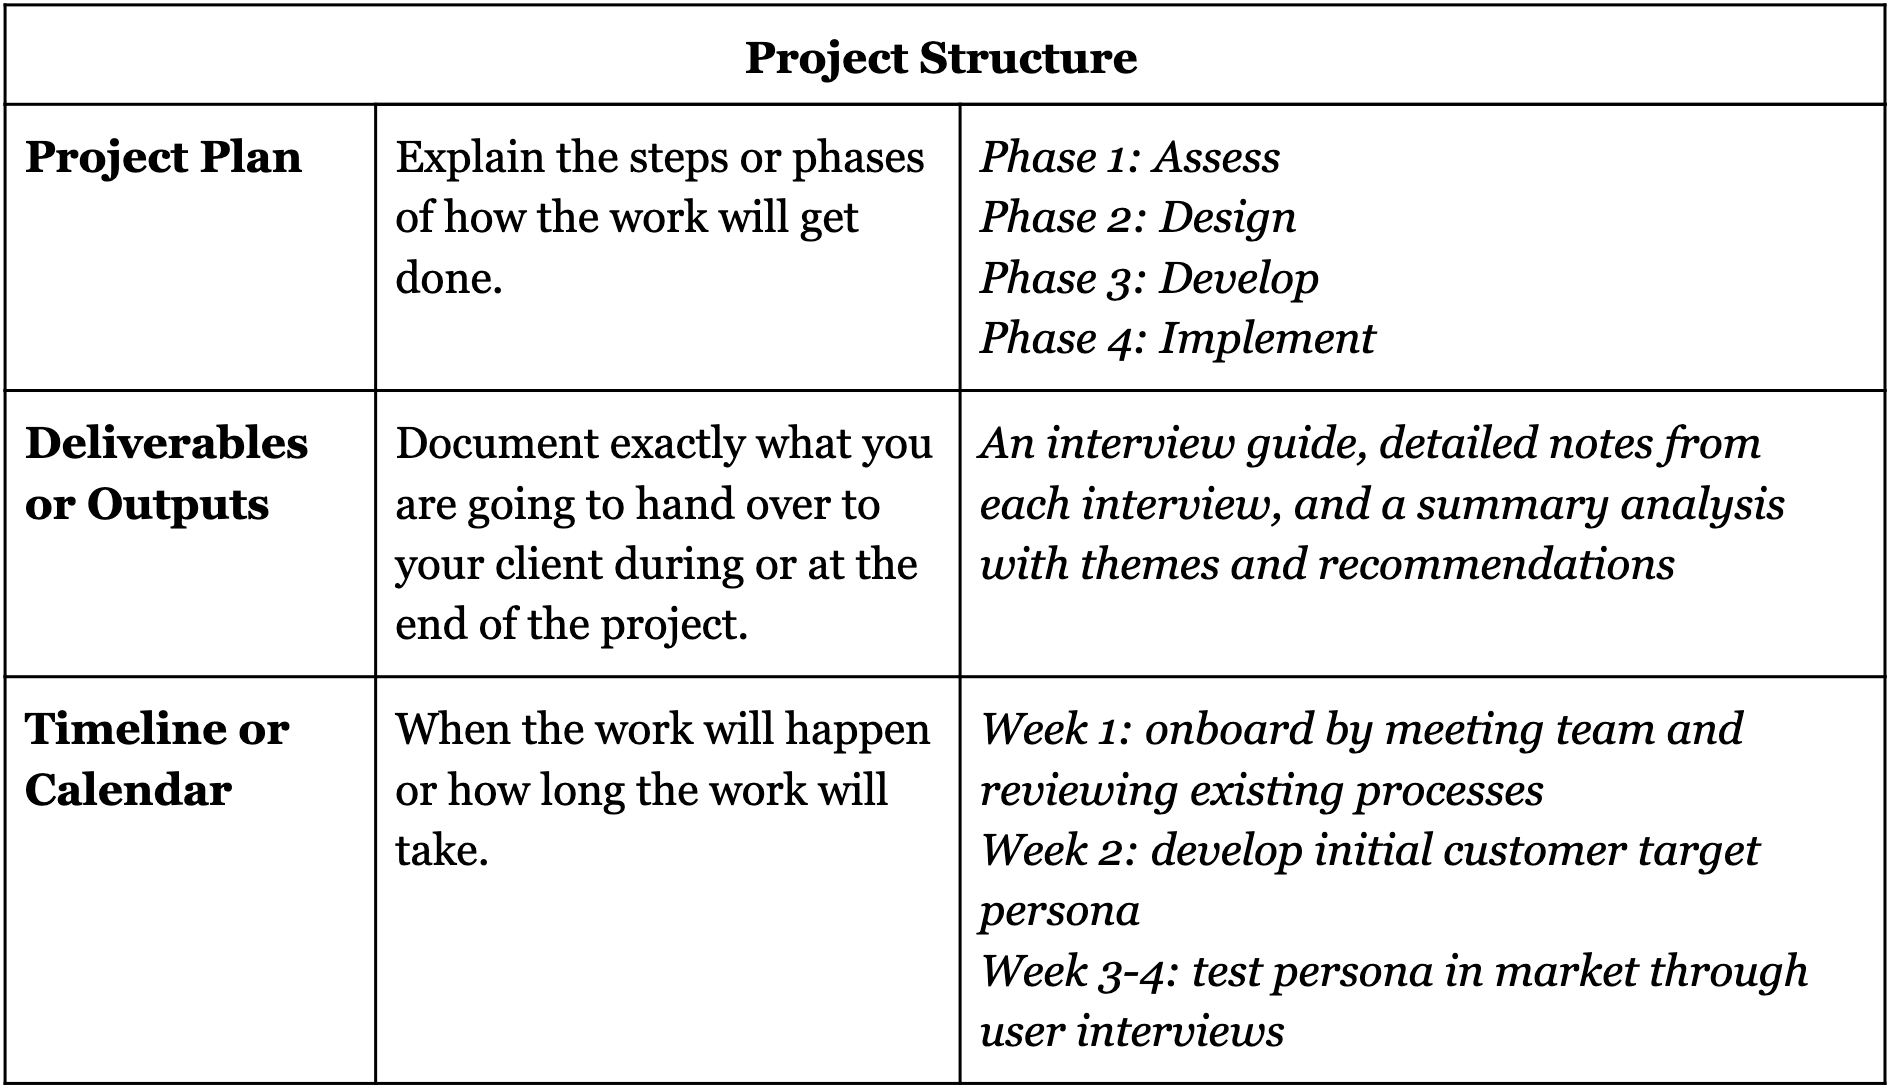 Project Structure.png